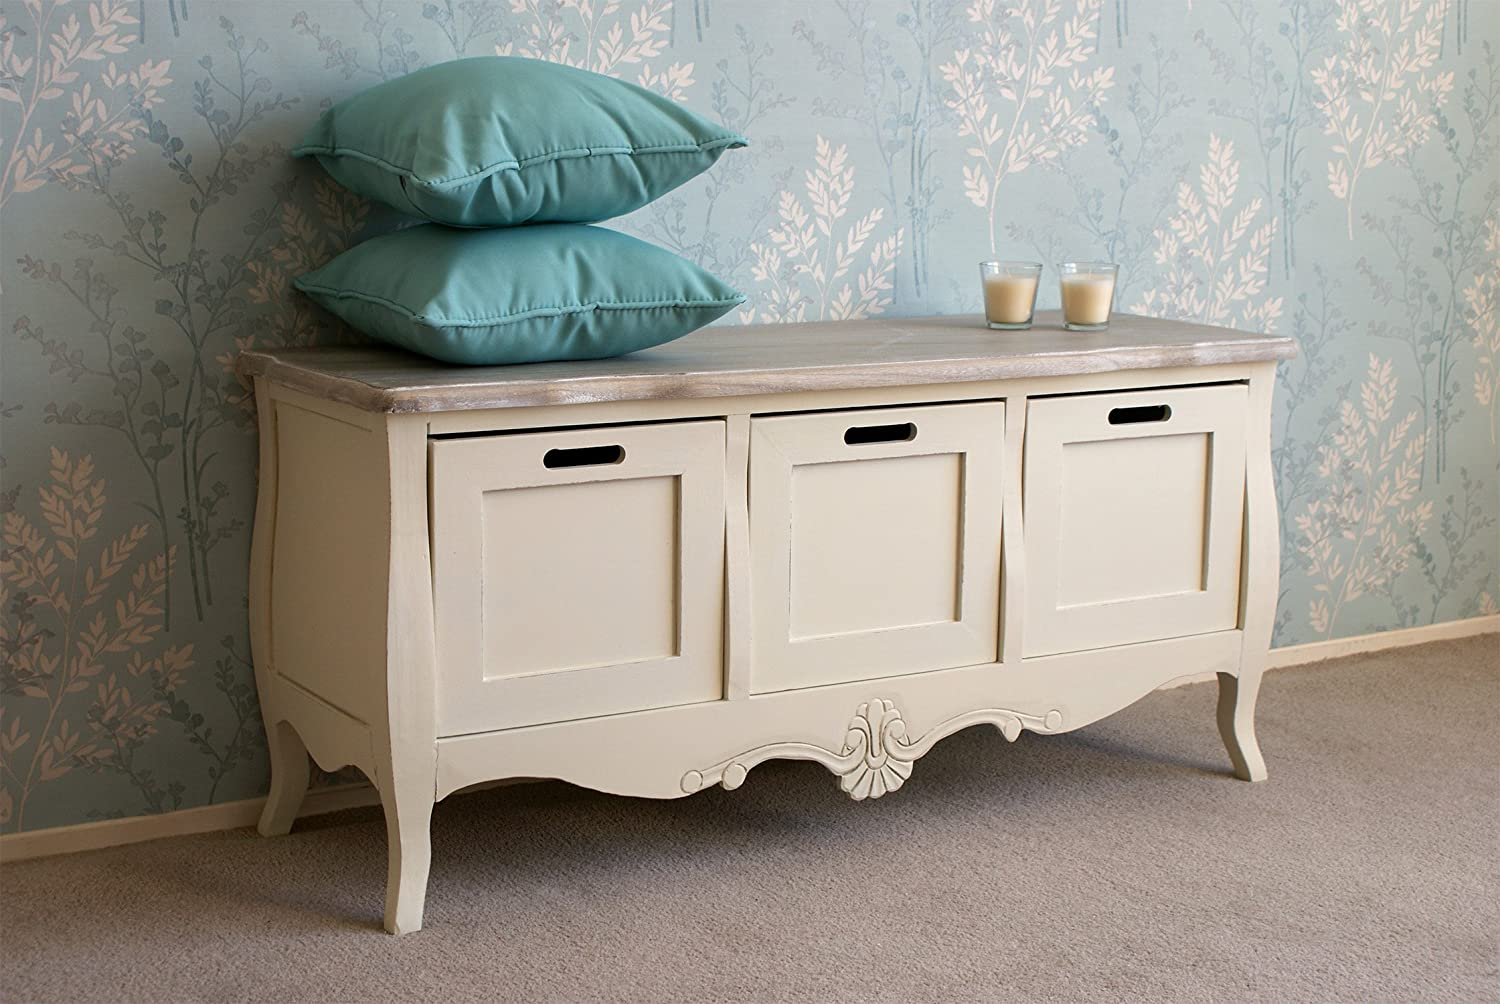 Delightful Casamoré Devon 3 Drawer Storage Bench With A French Shabby Chic Look   FREE  DELIVERY: Amazon.co.uk: Kitchen U0026 Home